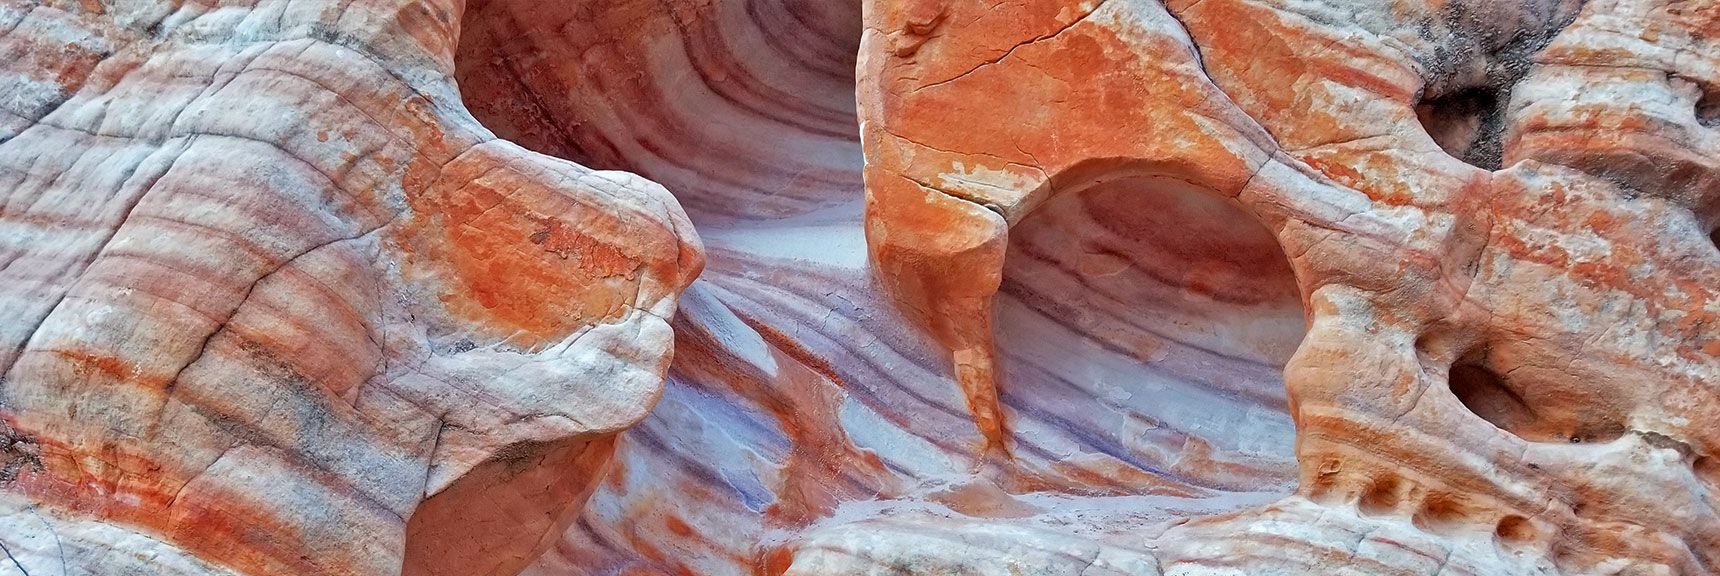 Colorful Rock Formations in the Northern Canyon Wash on Prospect Trail in Valley of Fire State Park, Nevada